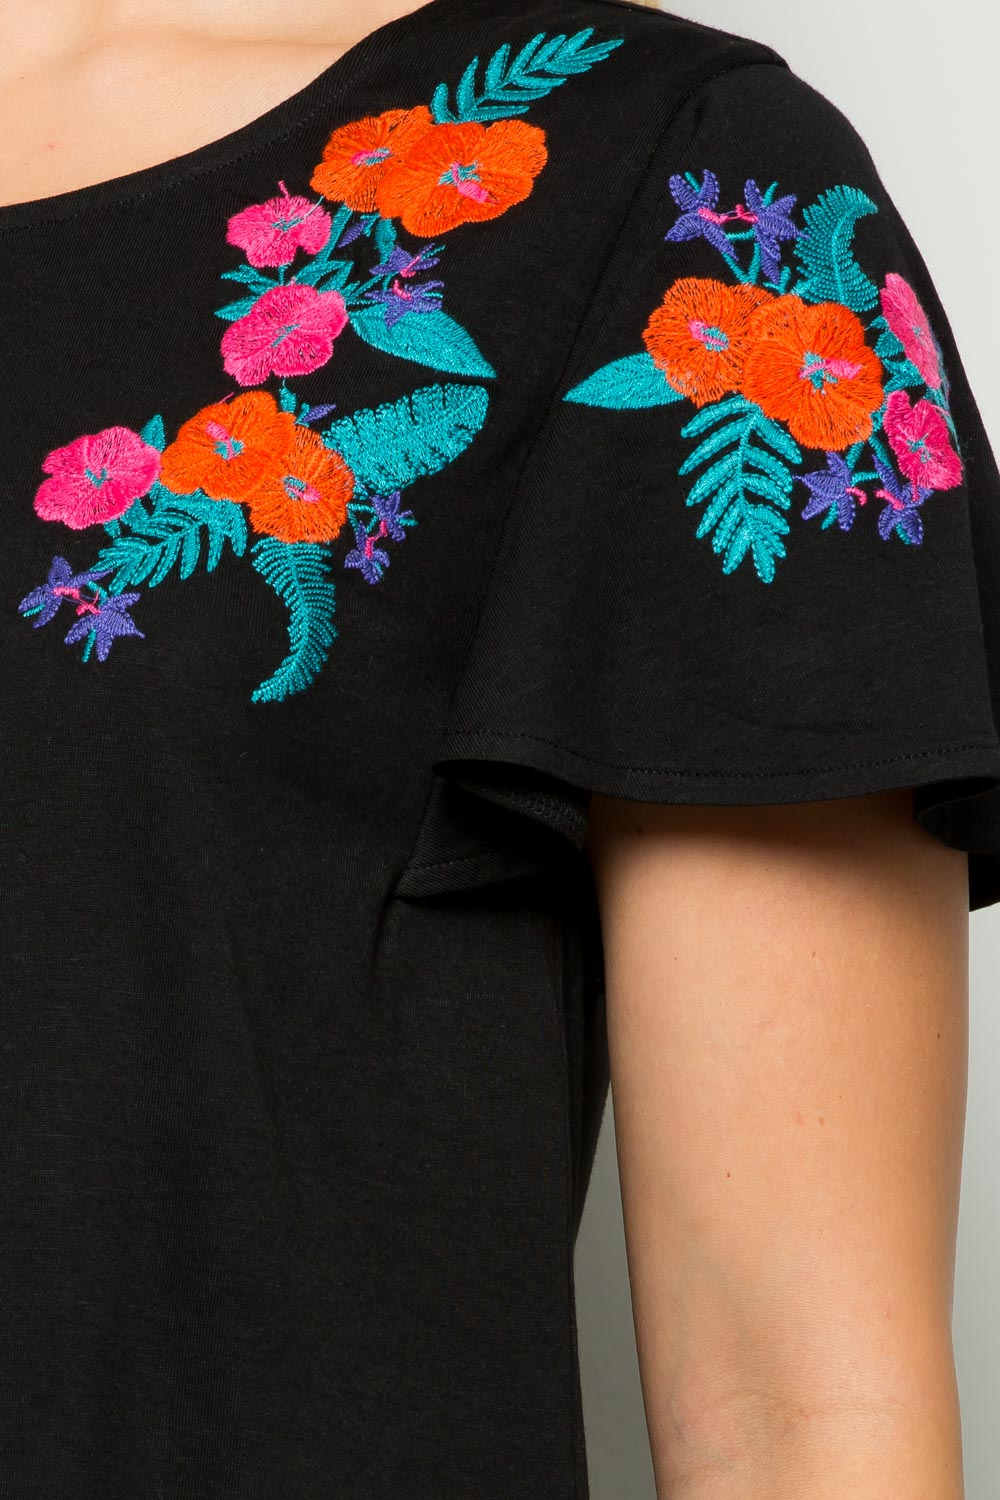 T2517 Floral Embroidery Jersey Top - Black